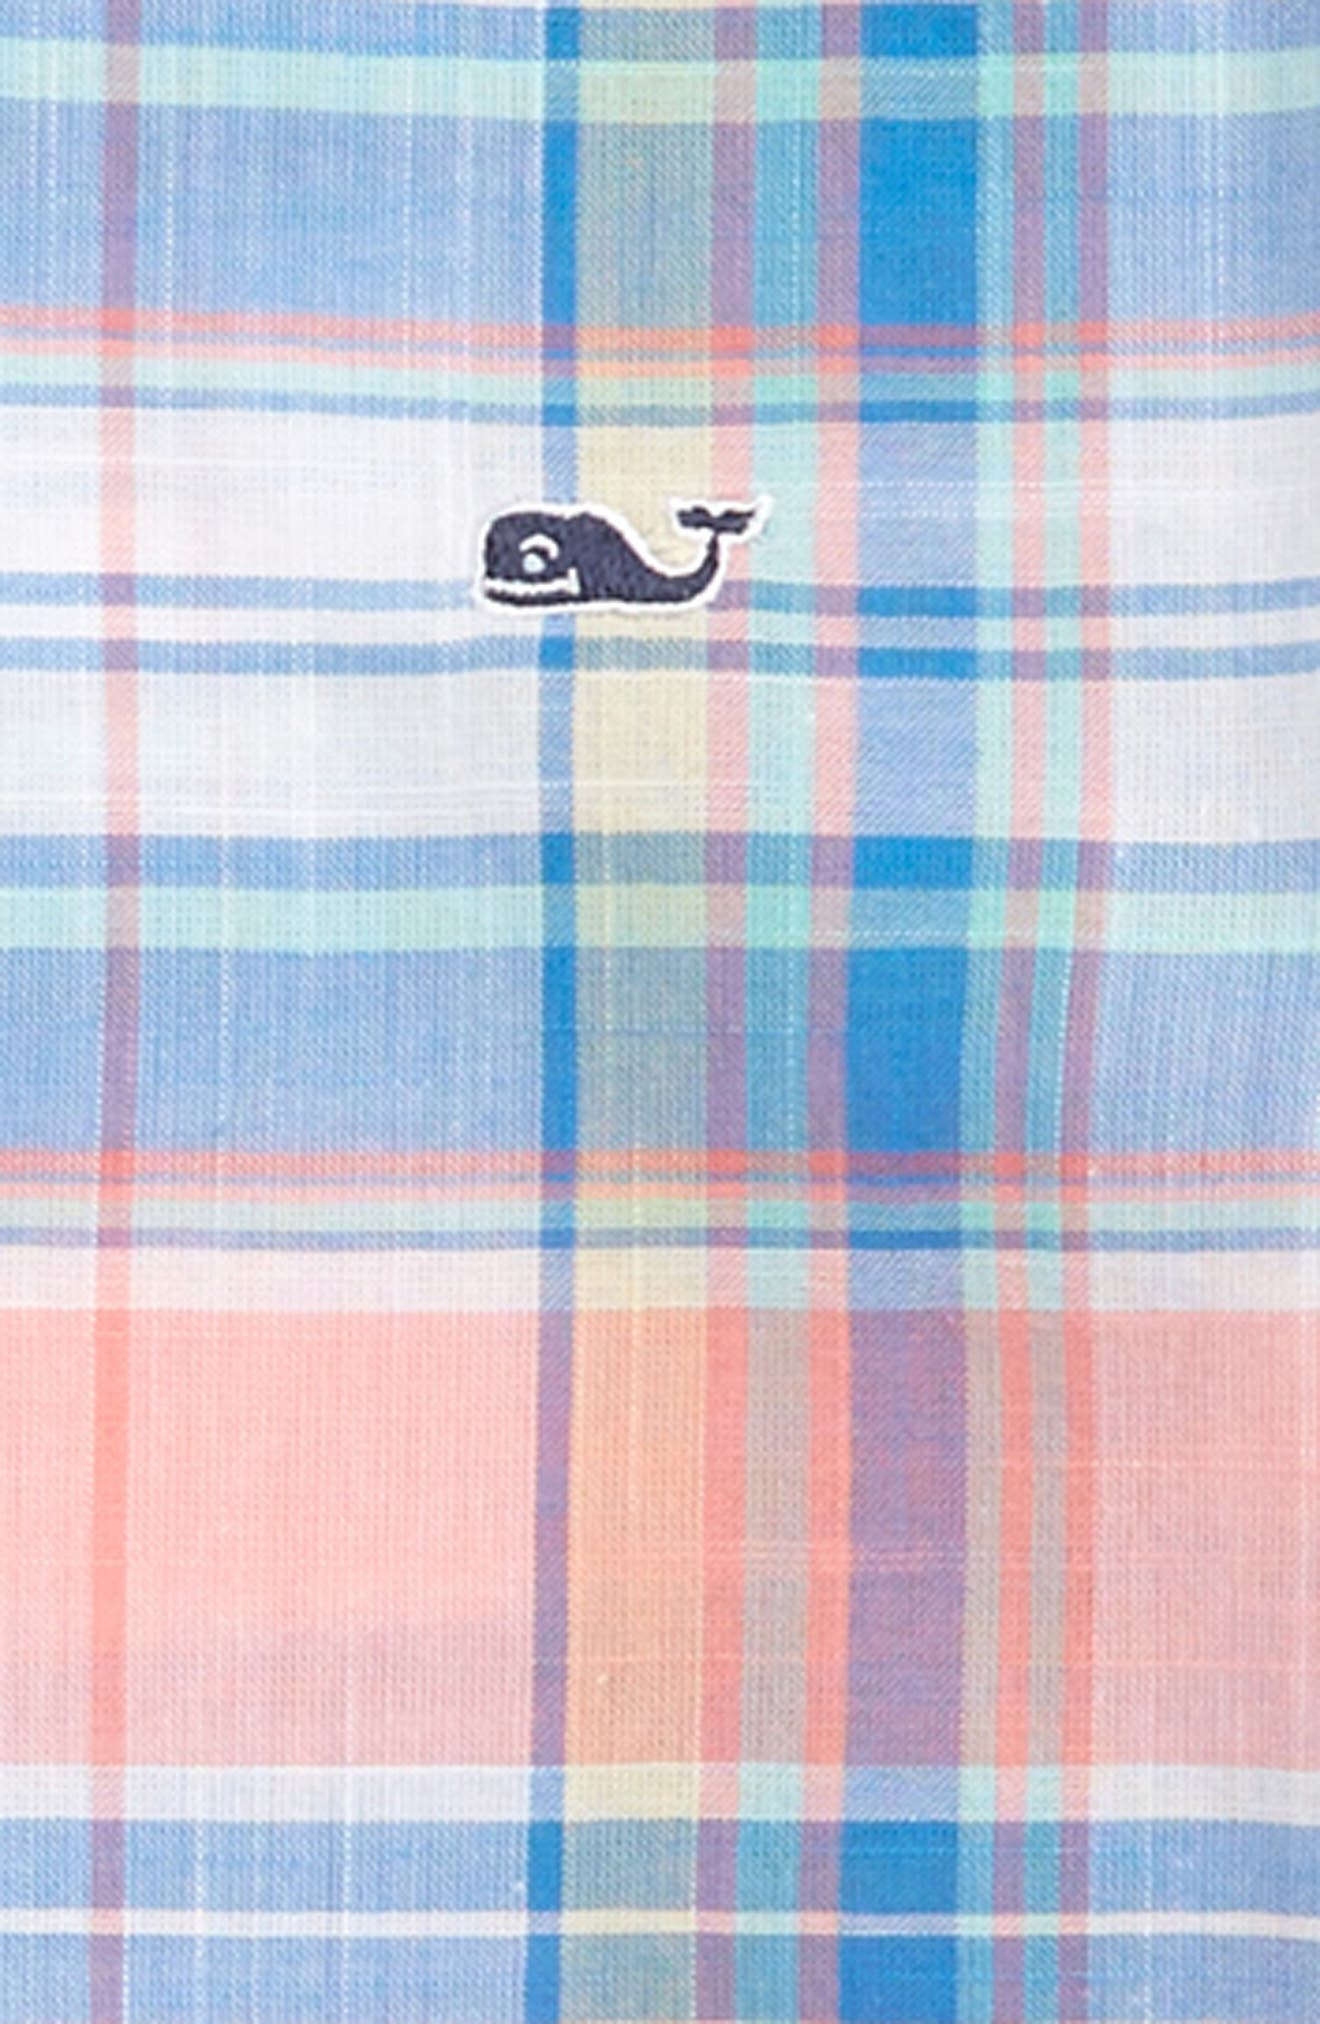 Smith Point Plaid Whale Shirt,                             Alternate thumbnail 2, color,                             Washed Neon Pink